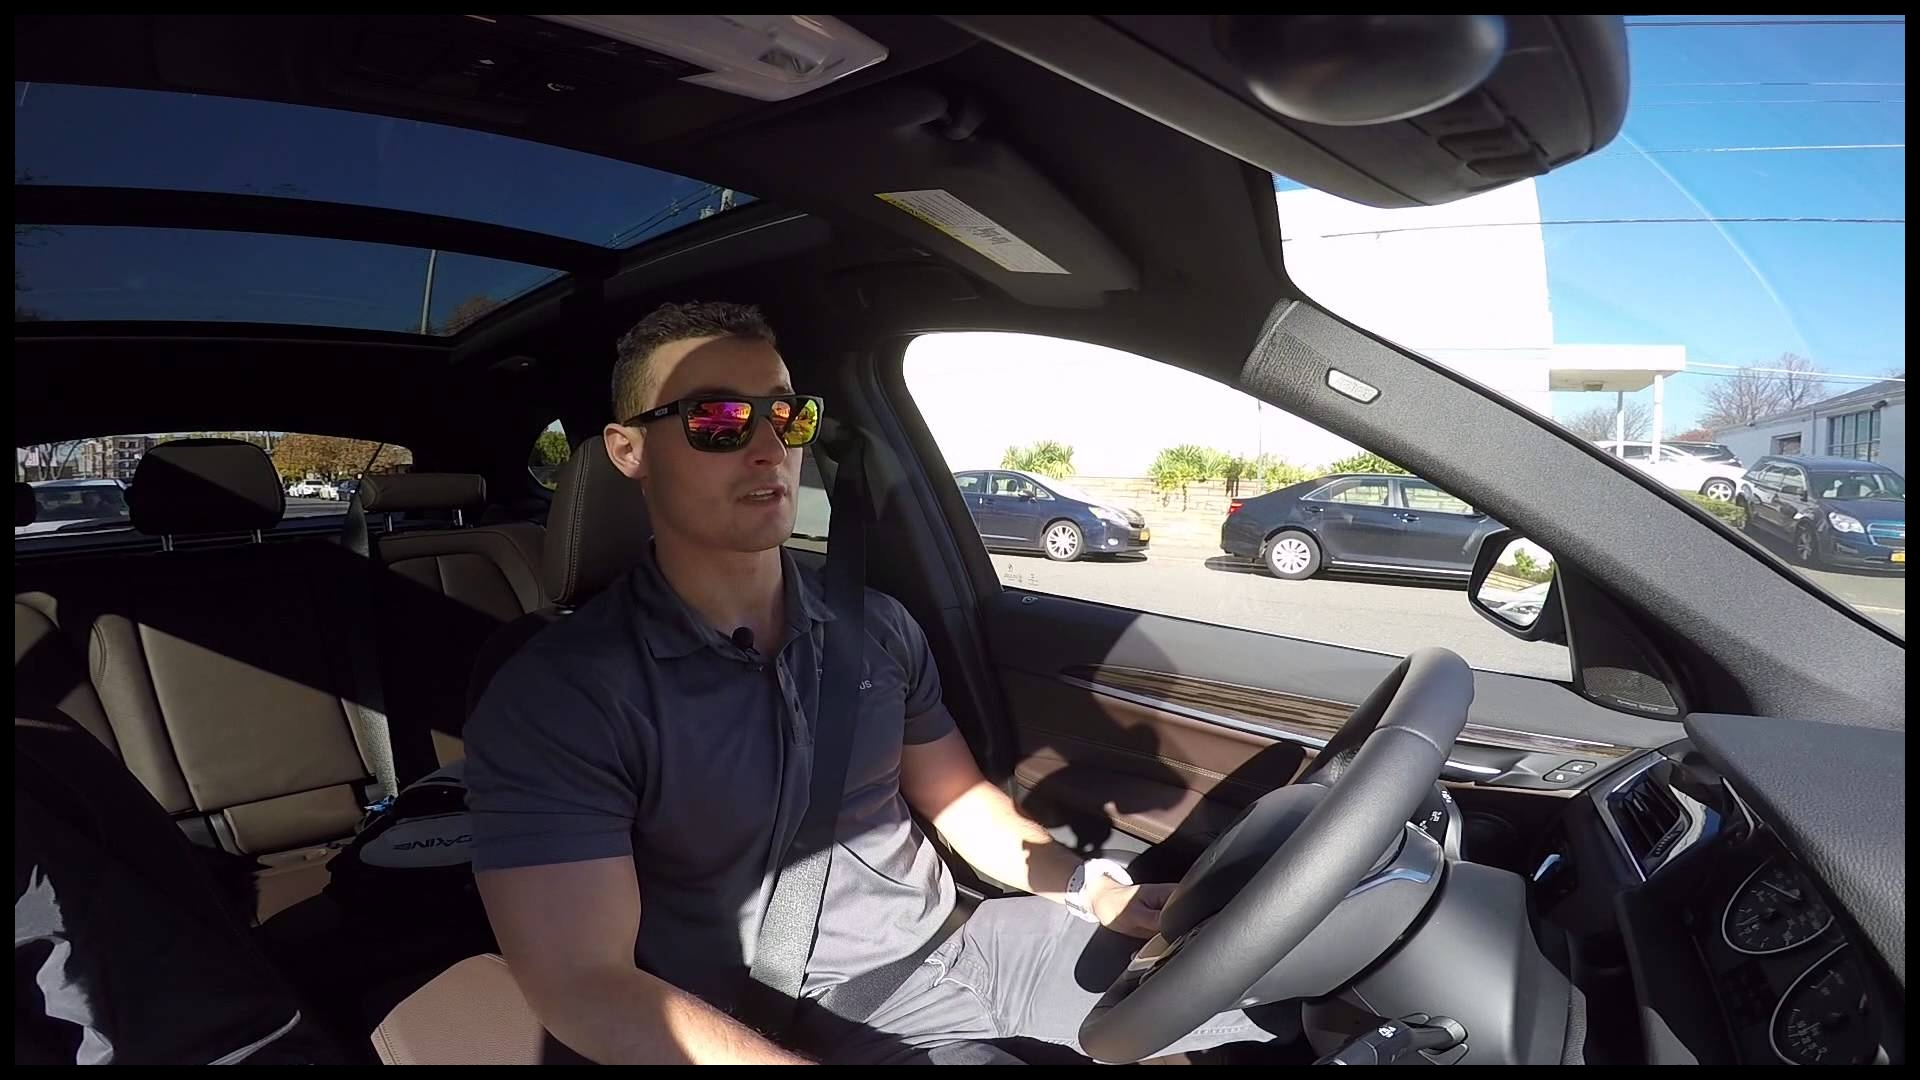 2016 BMW X1 Ride Along Park Ave BMW